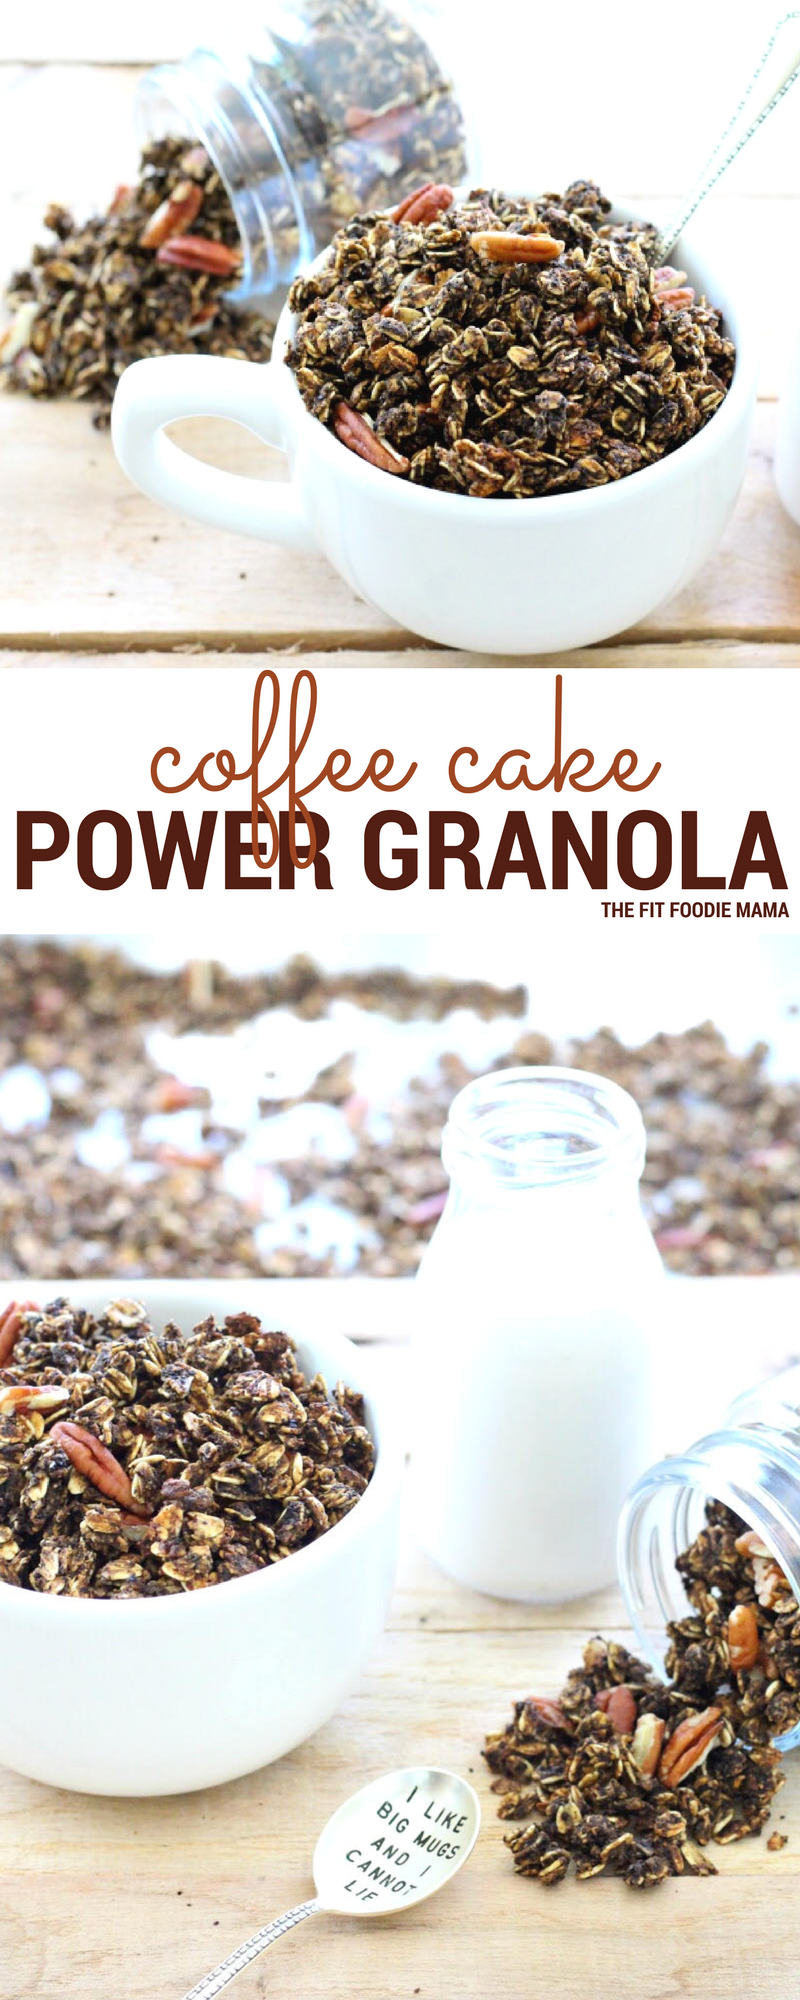 Coffee Cake Power Granola - This gluten free, dairy free and vegan breakfast is packed with plant protein, healthy ingredients like black strap molasses and real coffee. It's the perfect breakfast or pre-workout fuel to get you through the day! Find the recipe on TheFitFoodieMama.com